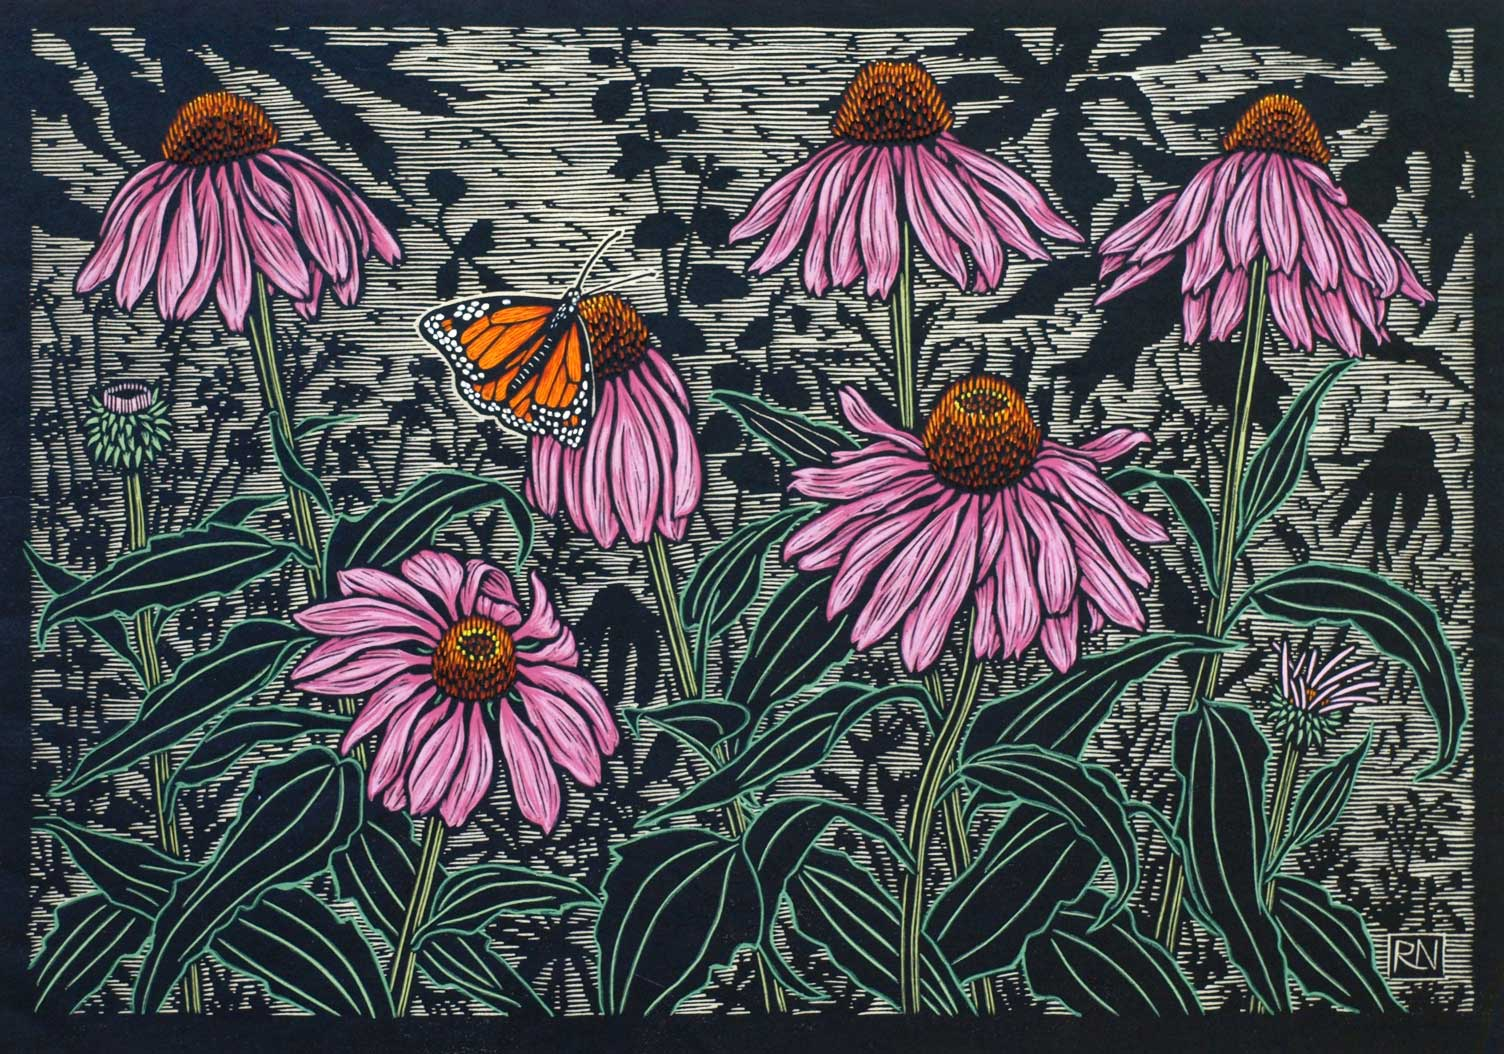 Echinacea flower  35 x 50 cm, Edition of 50  Hand-coloured linocut on handmade Japanese paper $1,100